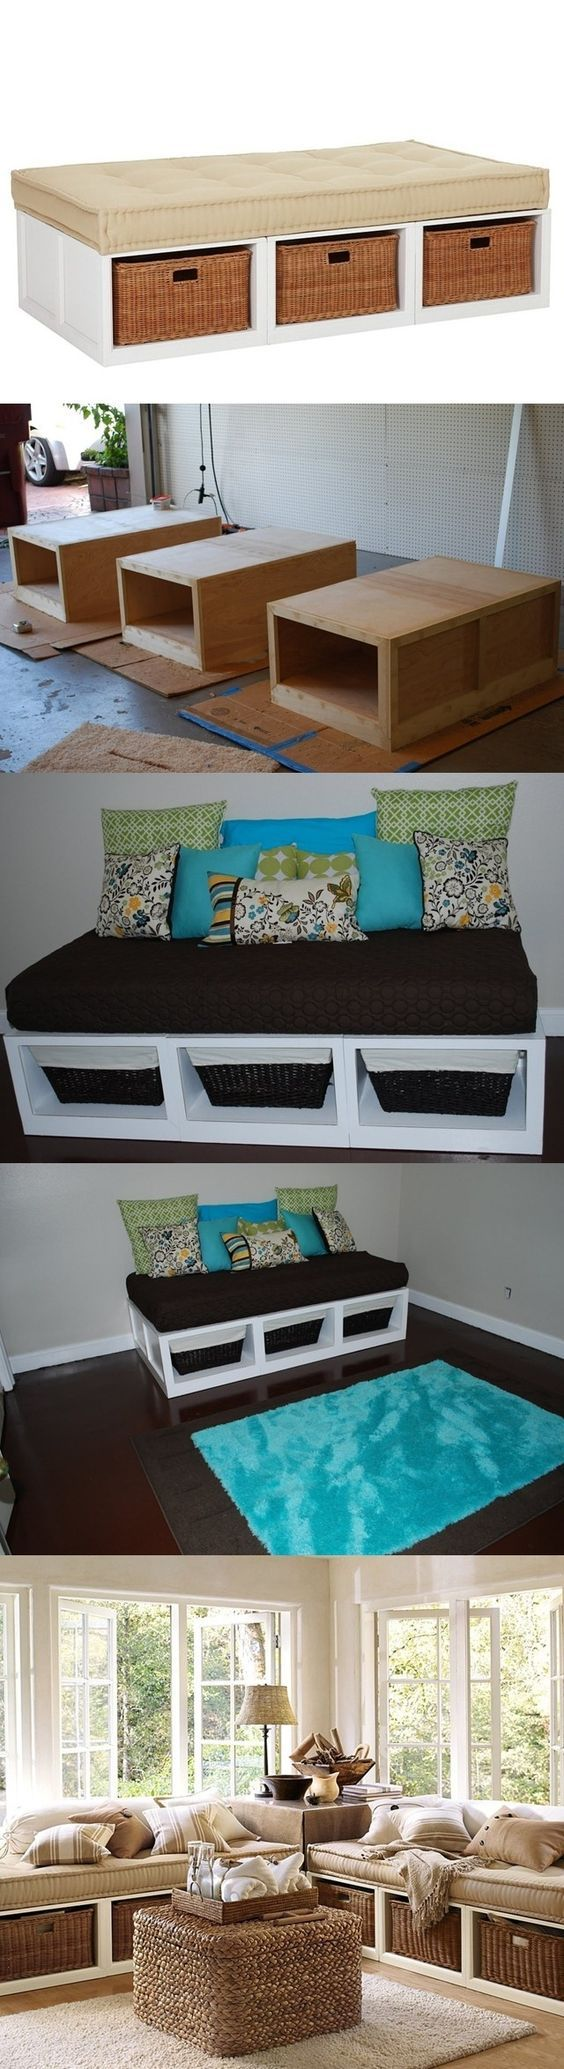 best simran images on pinterest woodworking carpentry and